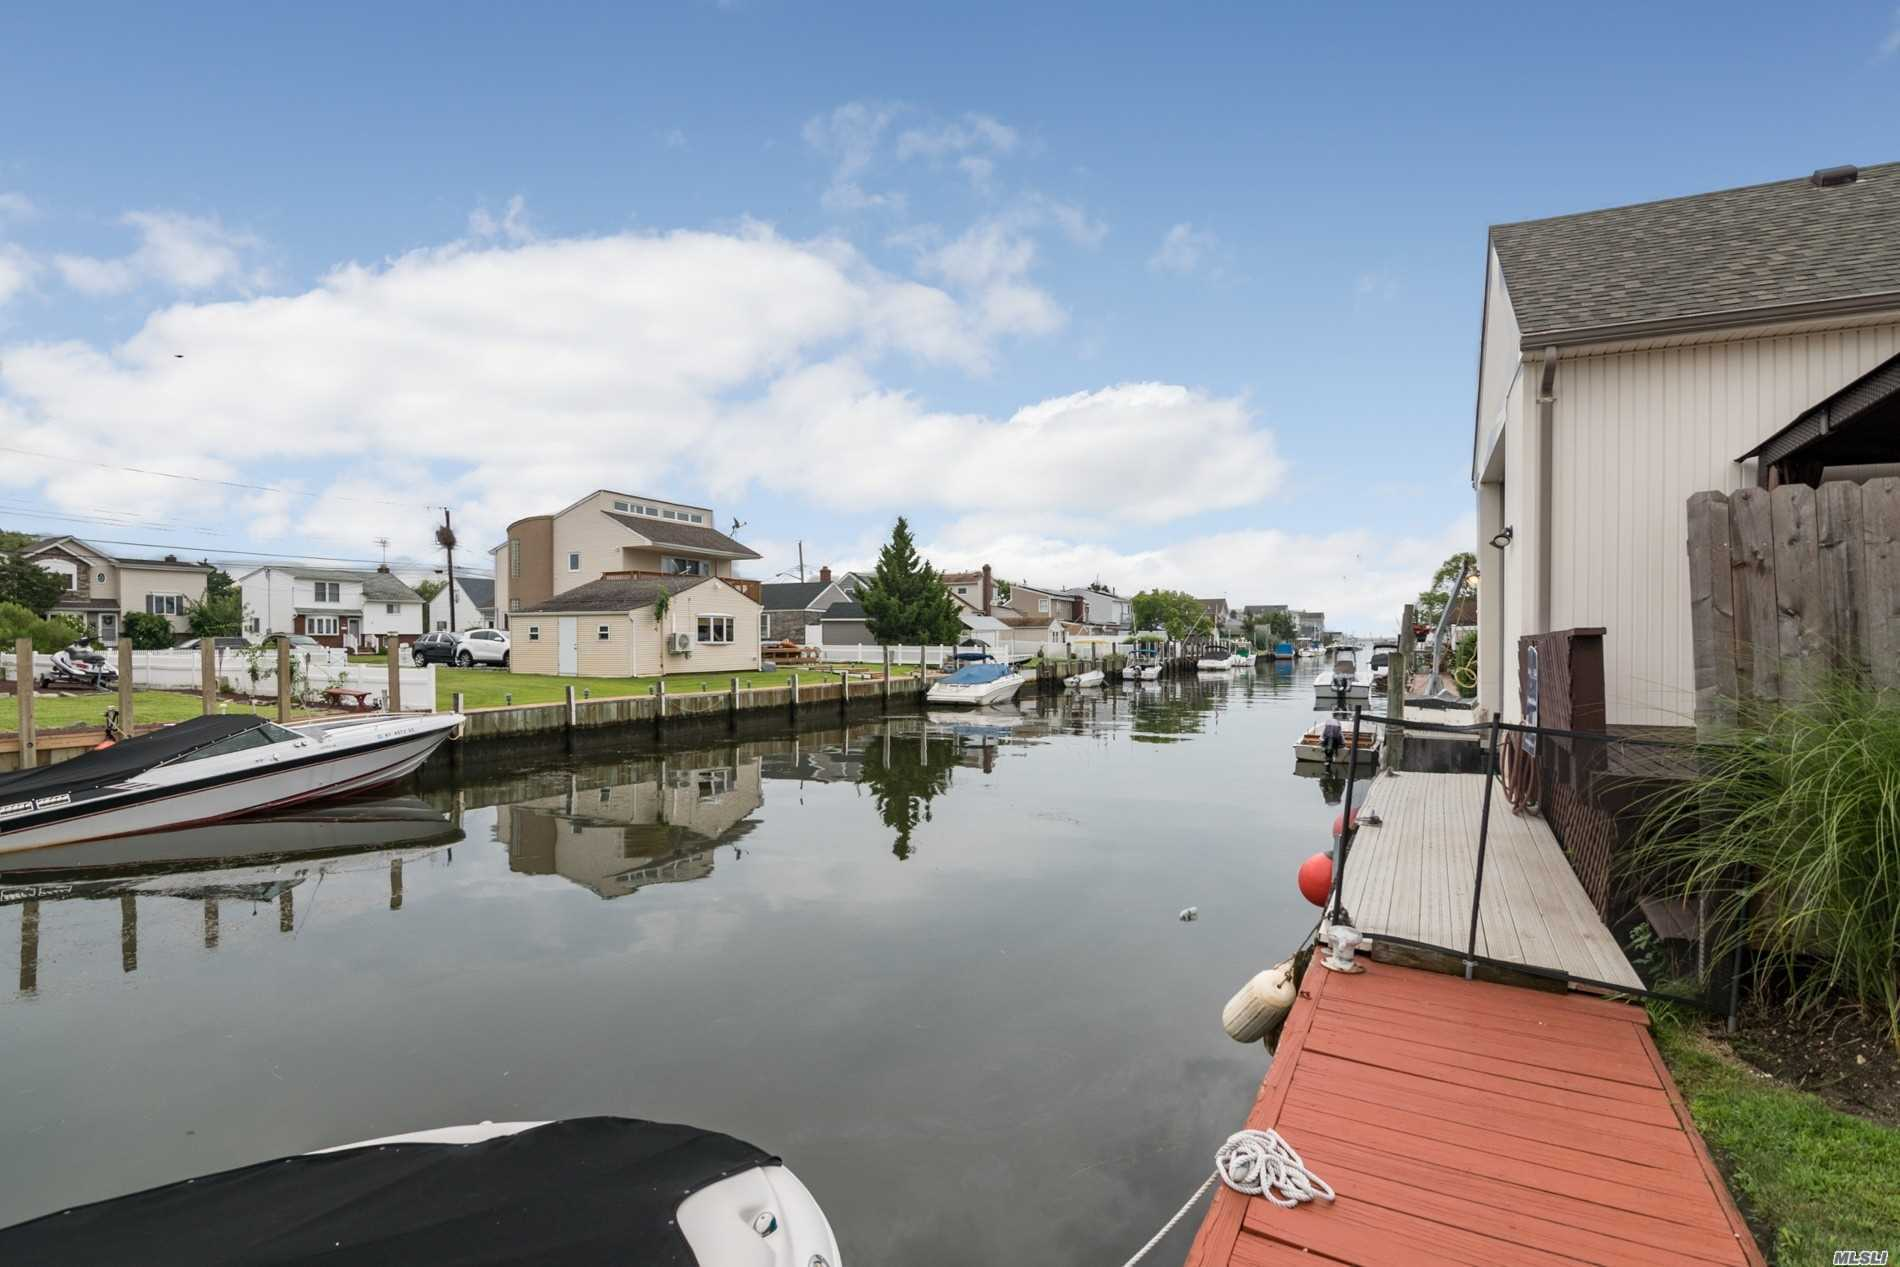 Waterfront Property 80 Feet Bulkhead Beautiful Vacation Setting Yard Home Is Completely Renovated Low Maintenance Efficient Easy Conversion For Mom To Stay Separately Minutes By Boat To All Local Beaches And Nightlife